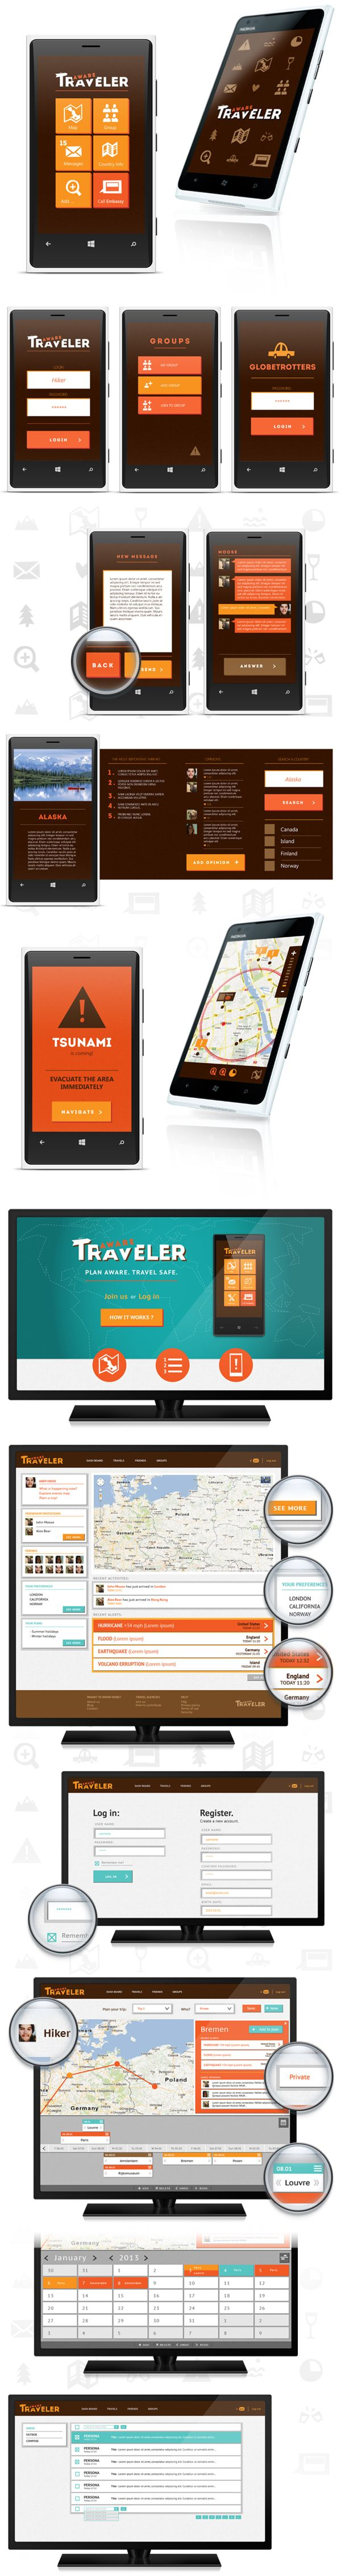 Aware Traveler by Zuzanna Rogatty, via Behance